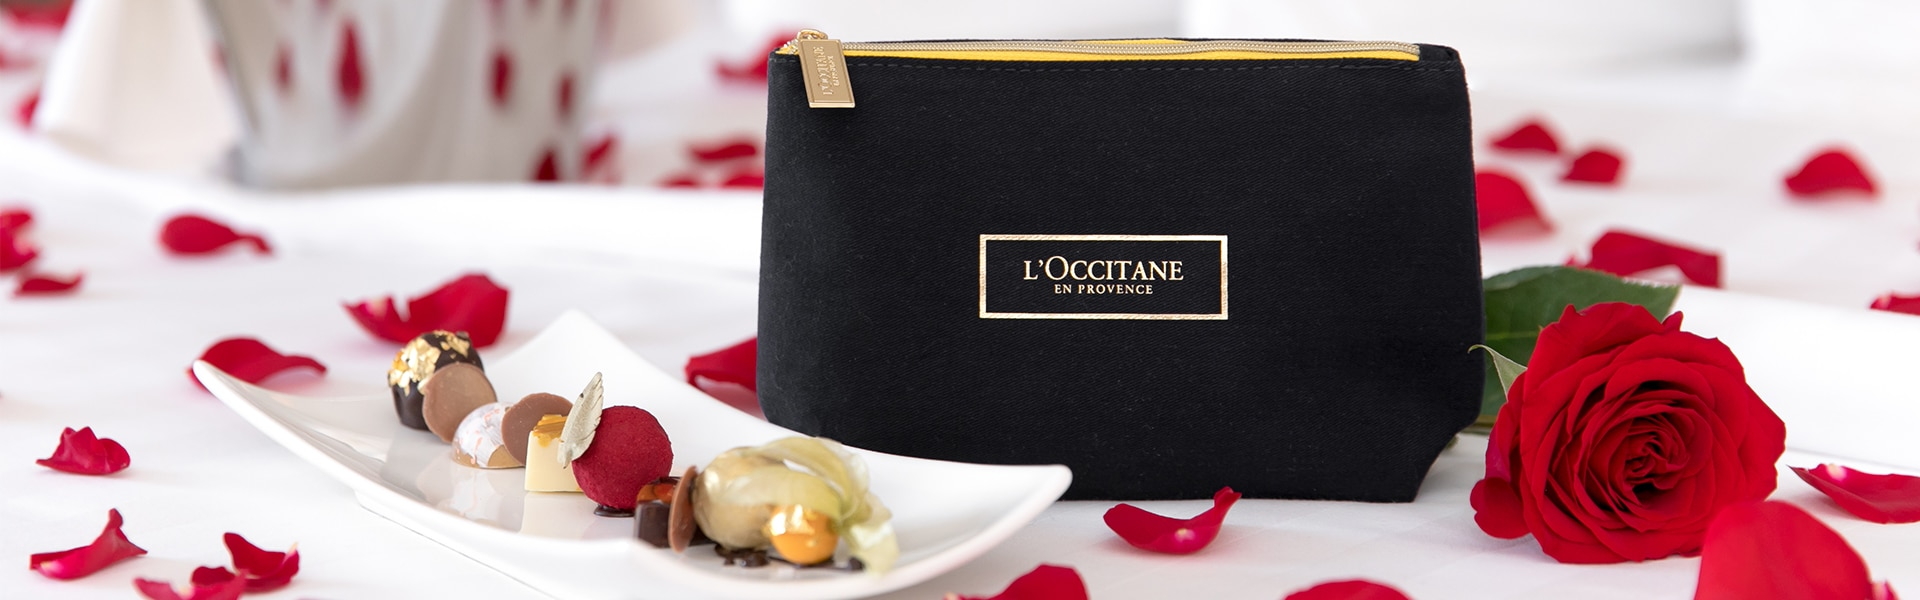 Nice Romance Package L'Occitane en Provence Amenity and rose petals